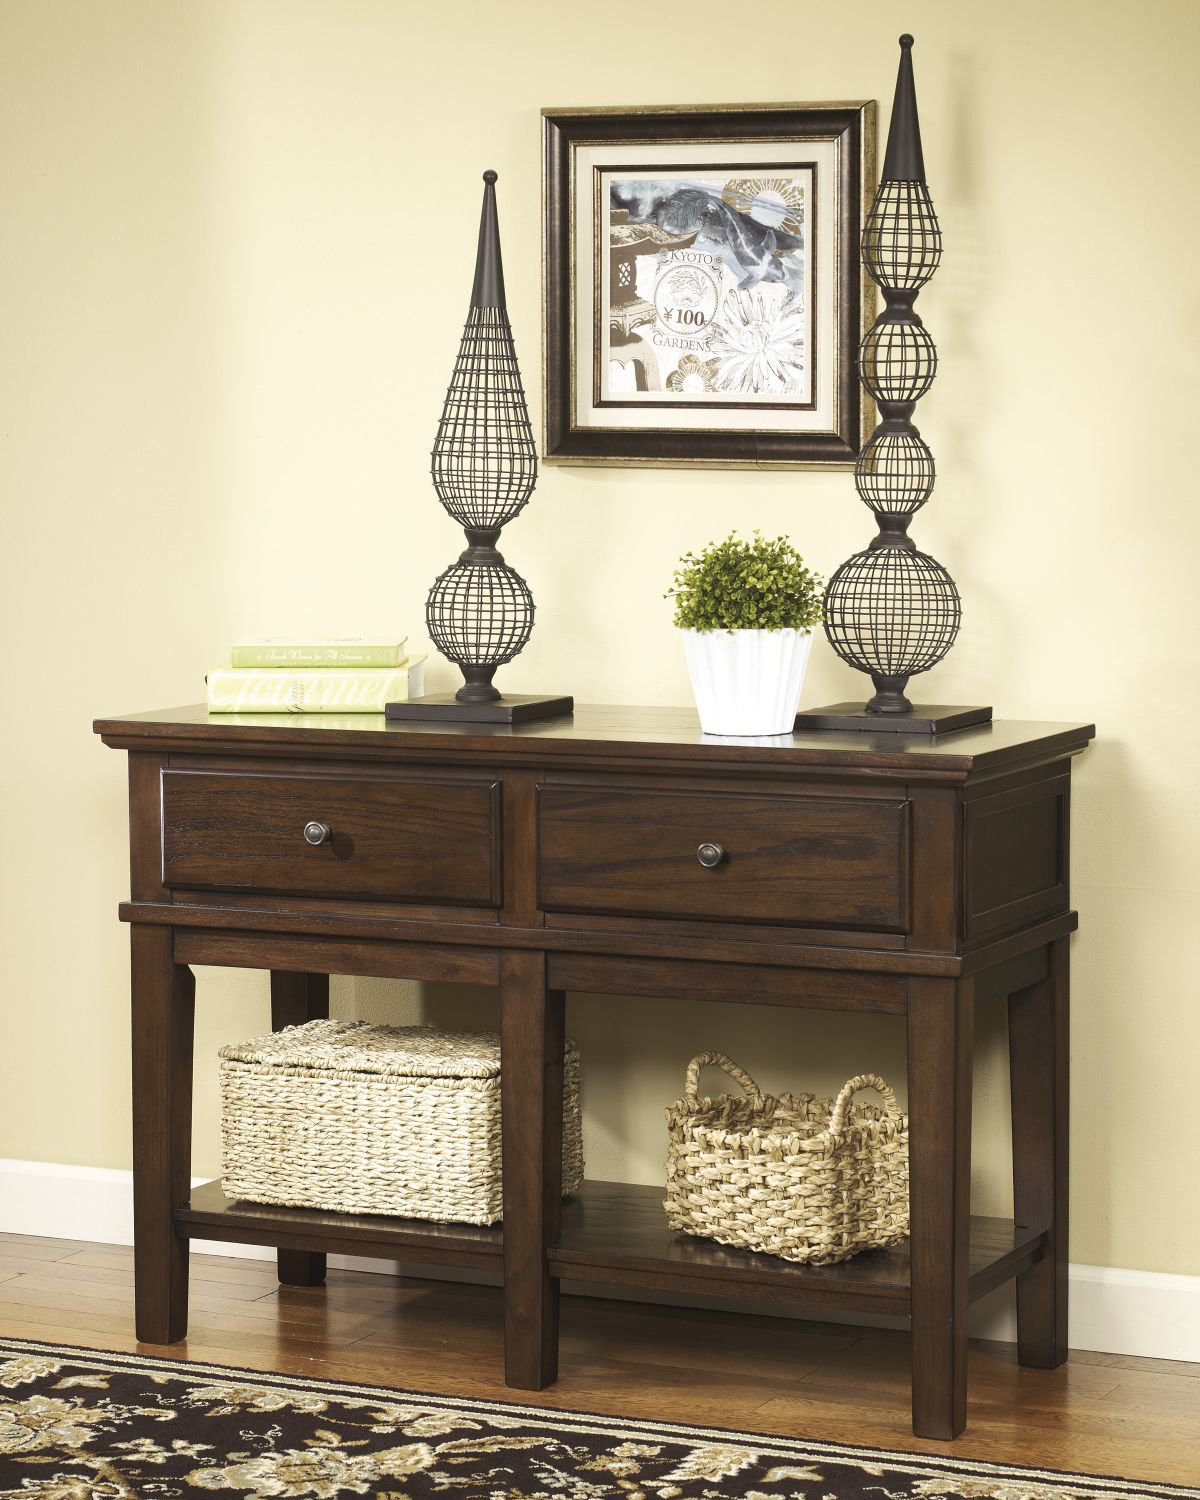 Picture of Gately Console Sofa Table